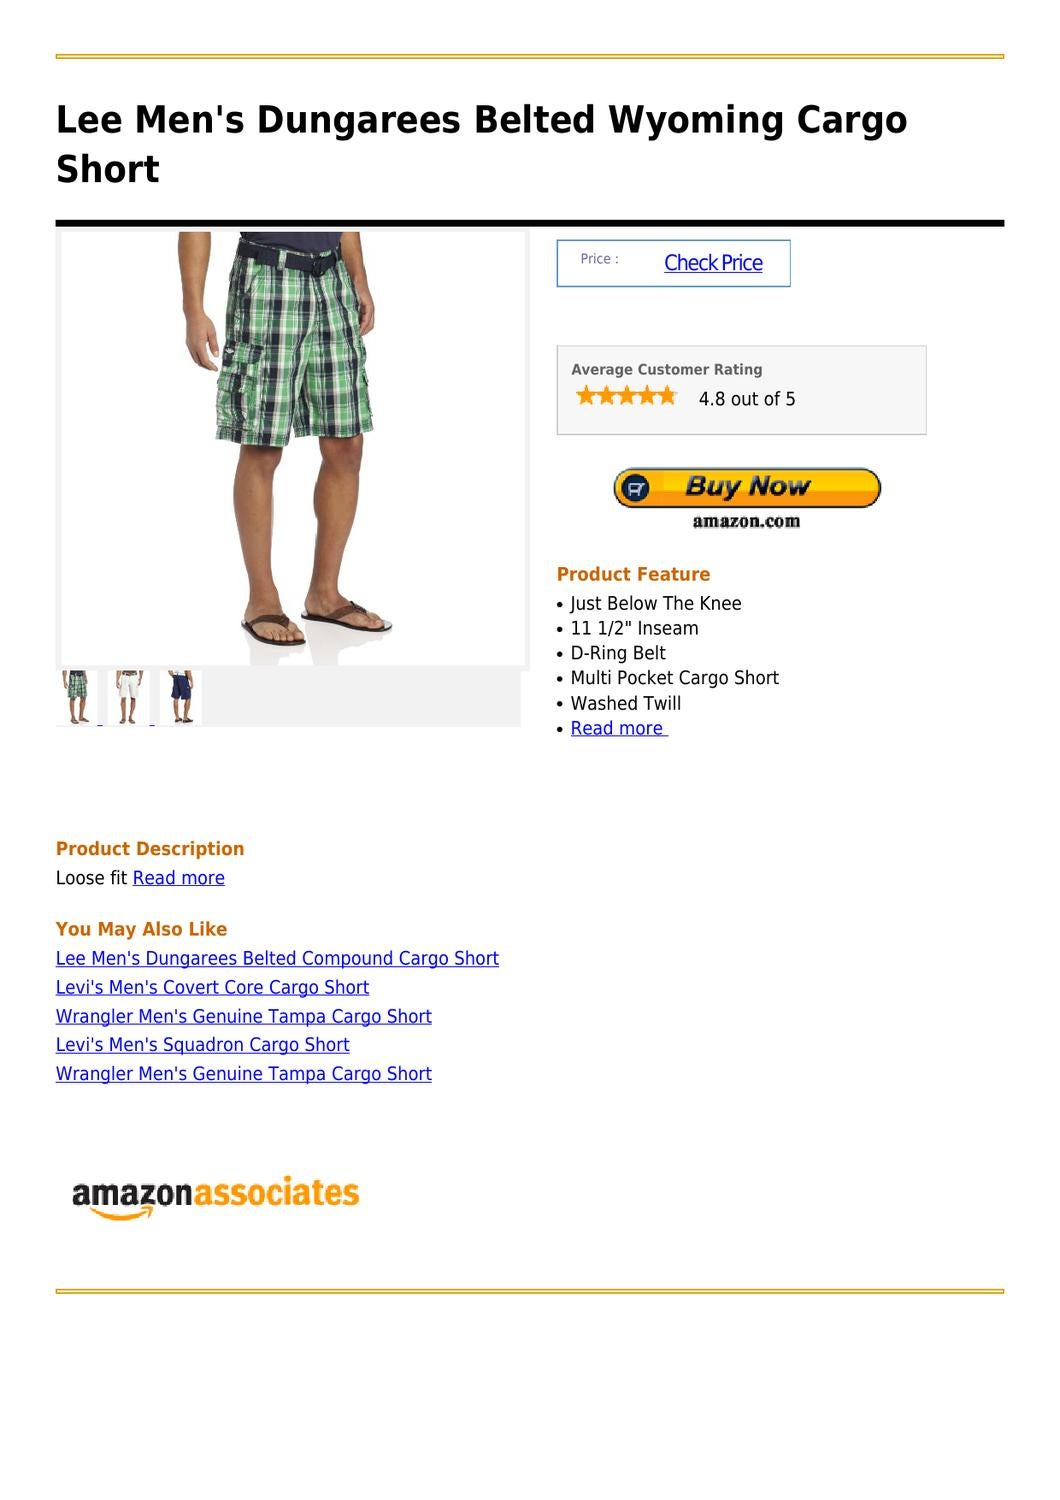 445618d1c5 Lee Men's Dungarees Belted Wyoming Cargo Short by pandora emora - issuu